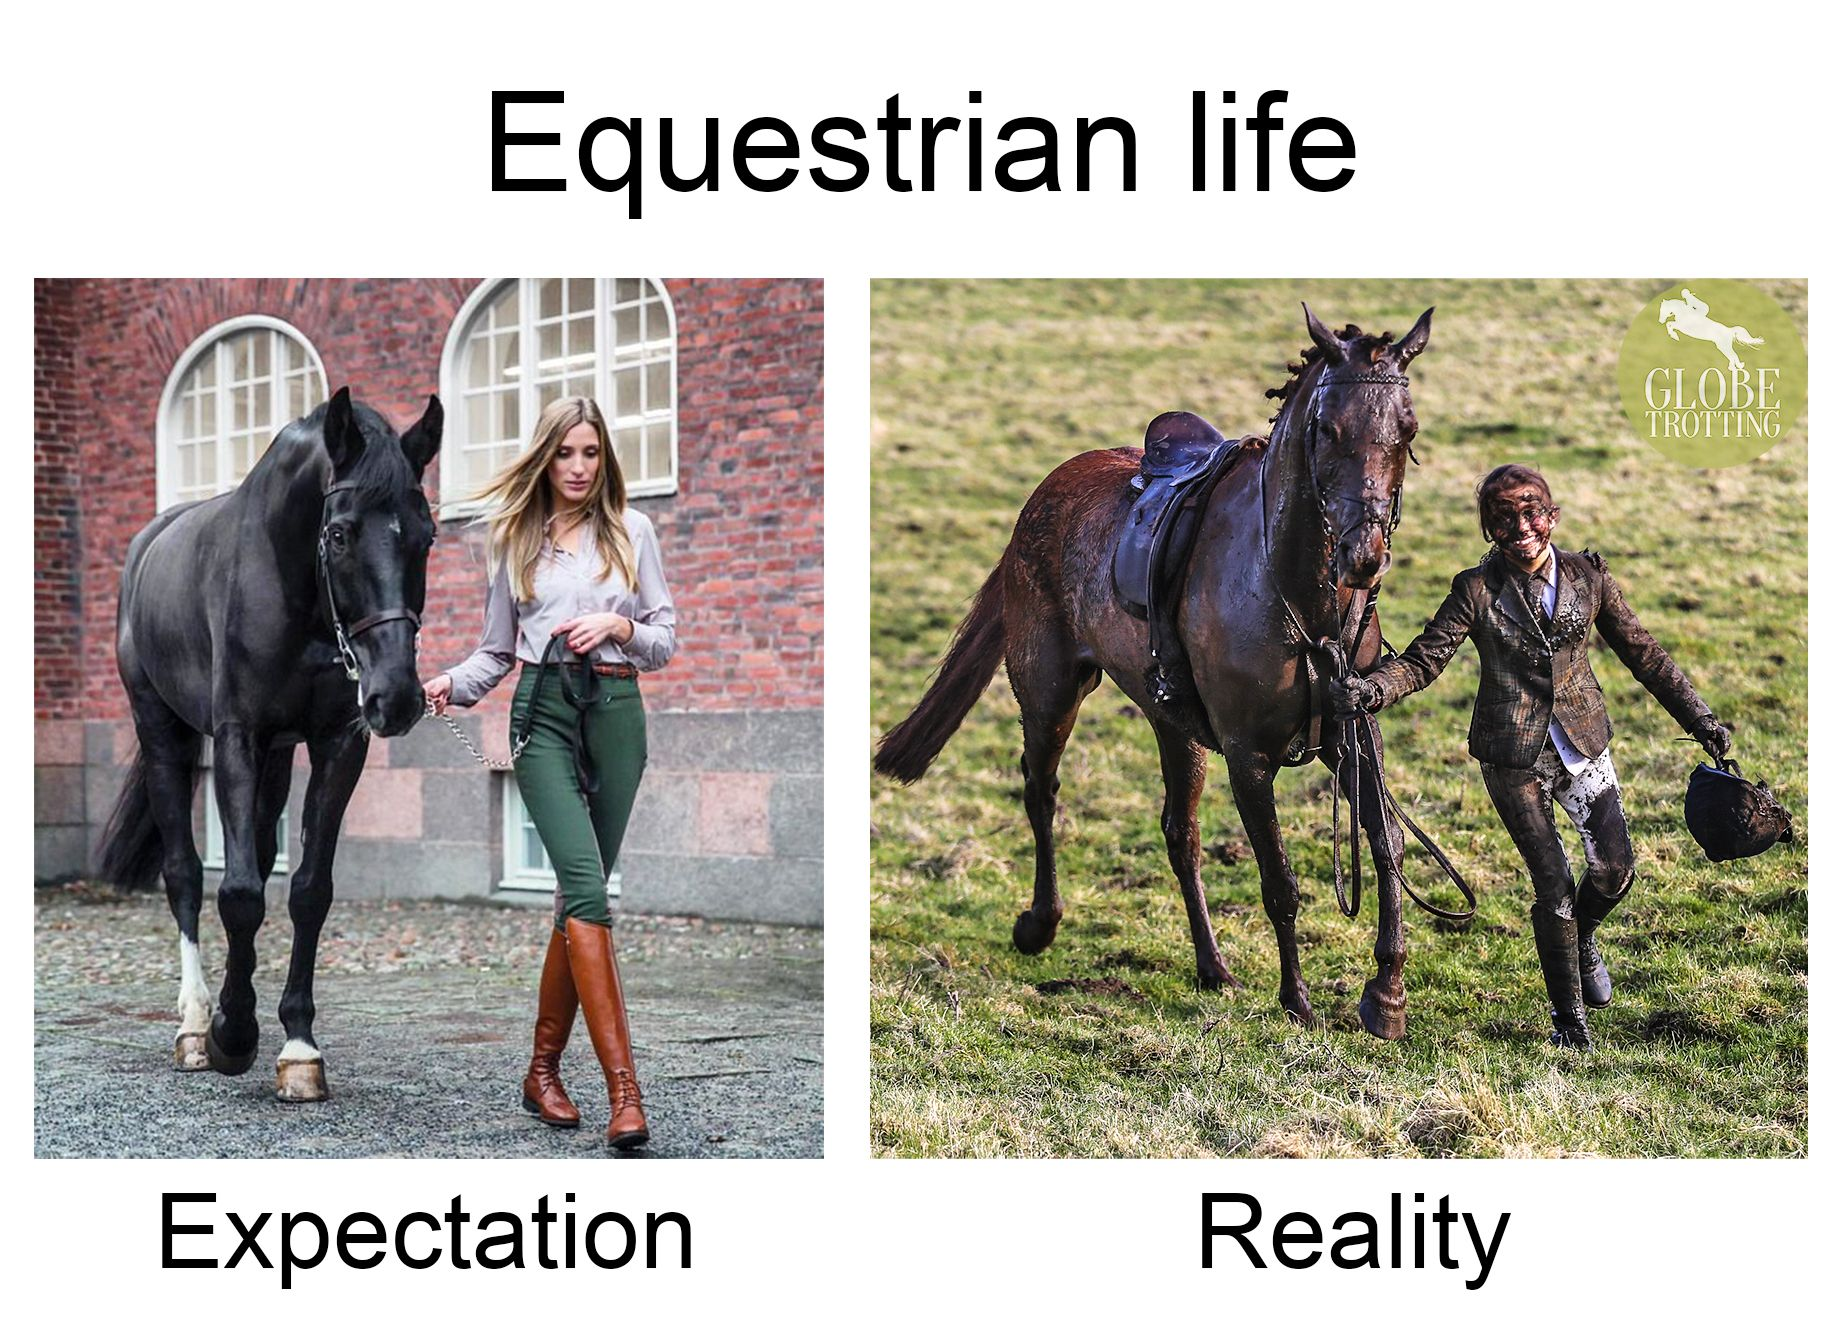 So True When Horses Are Involved You Don T Stay Clean For Long Funny Horse Memes Horses Funny Horses